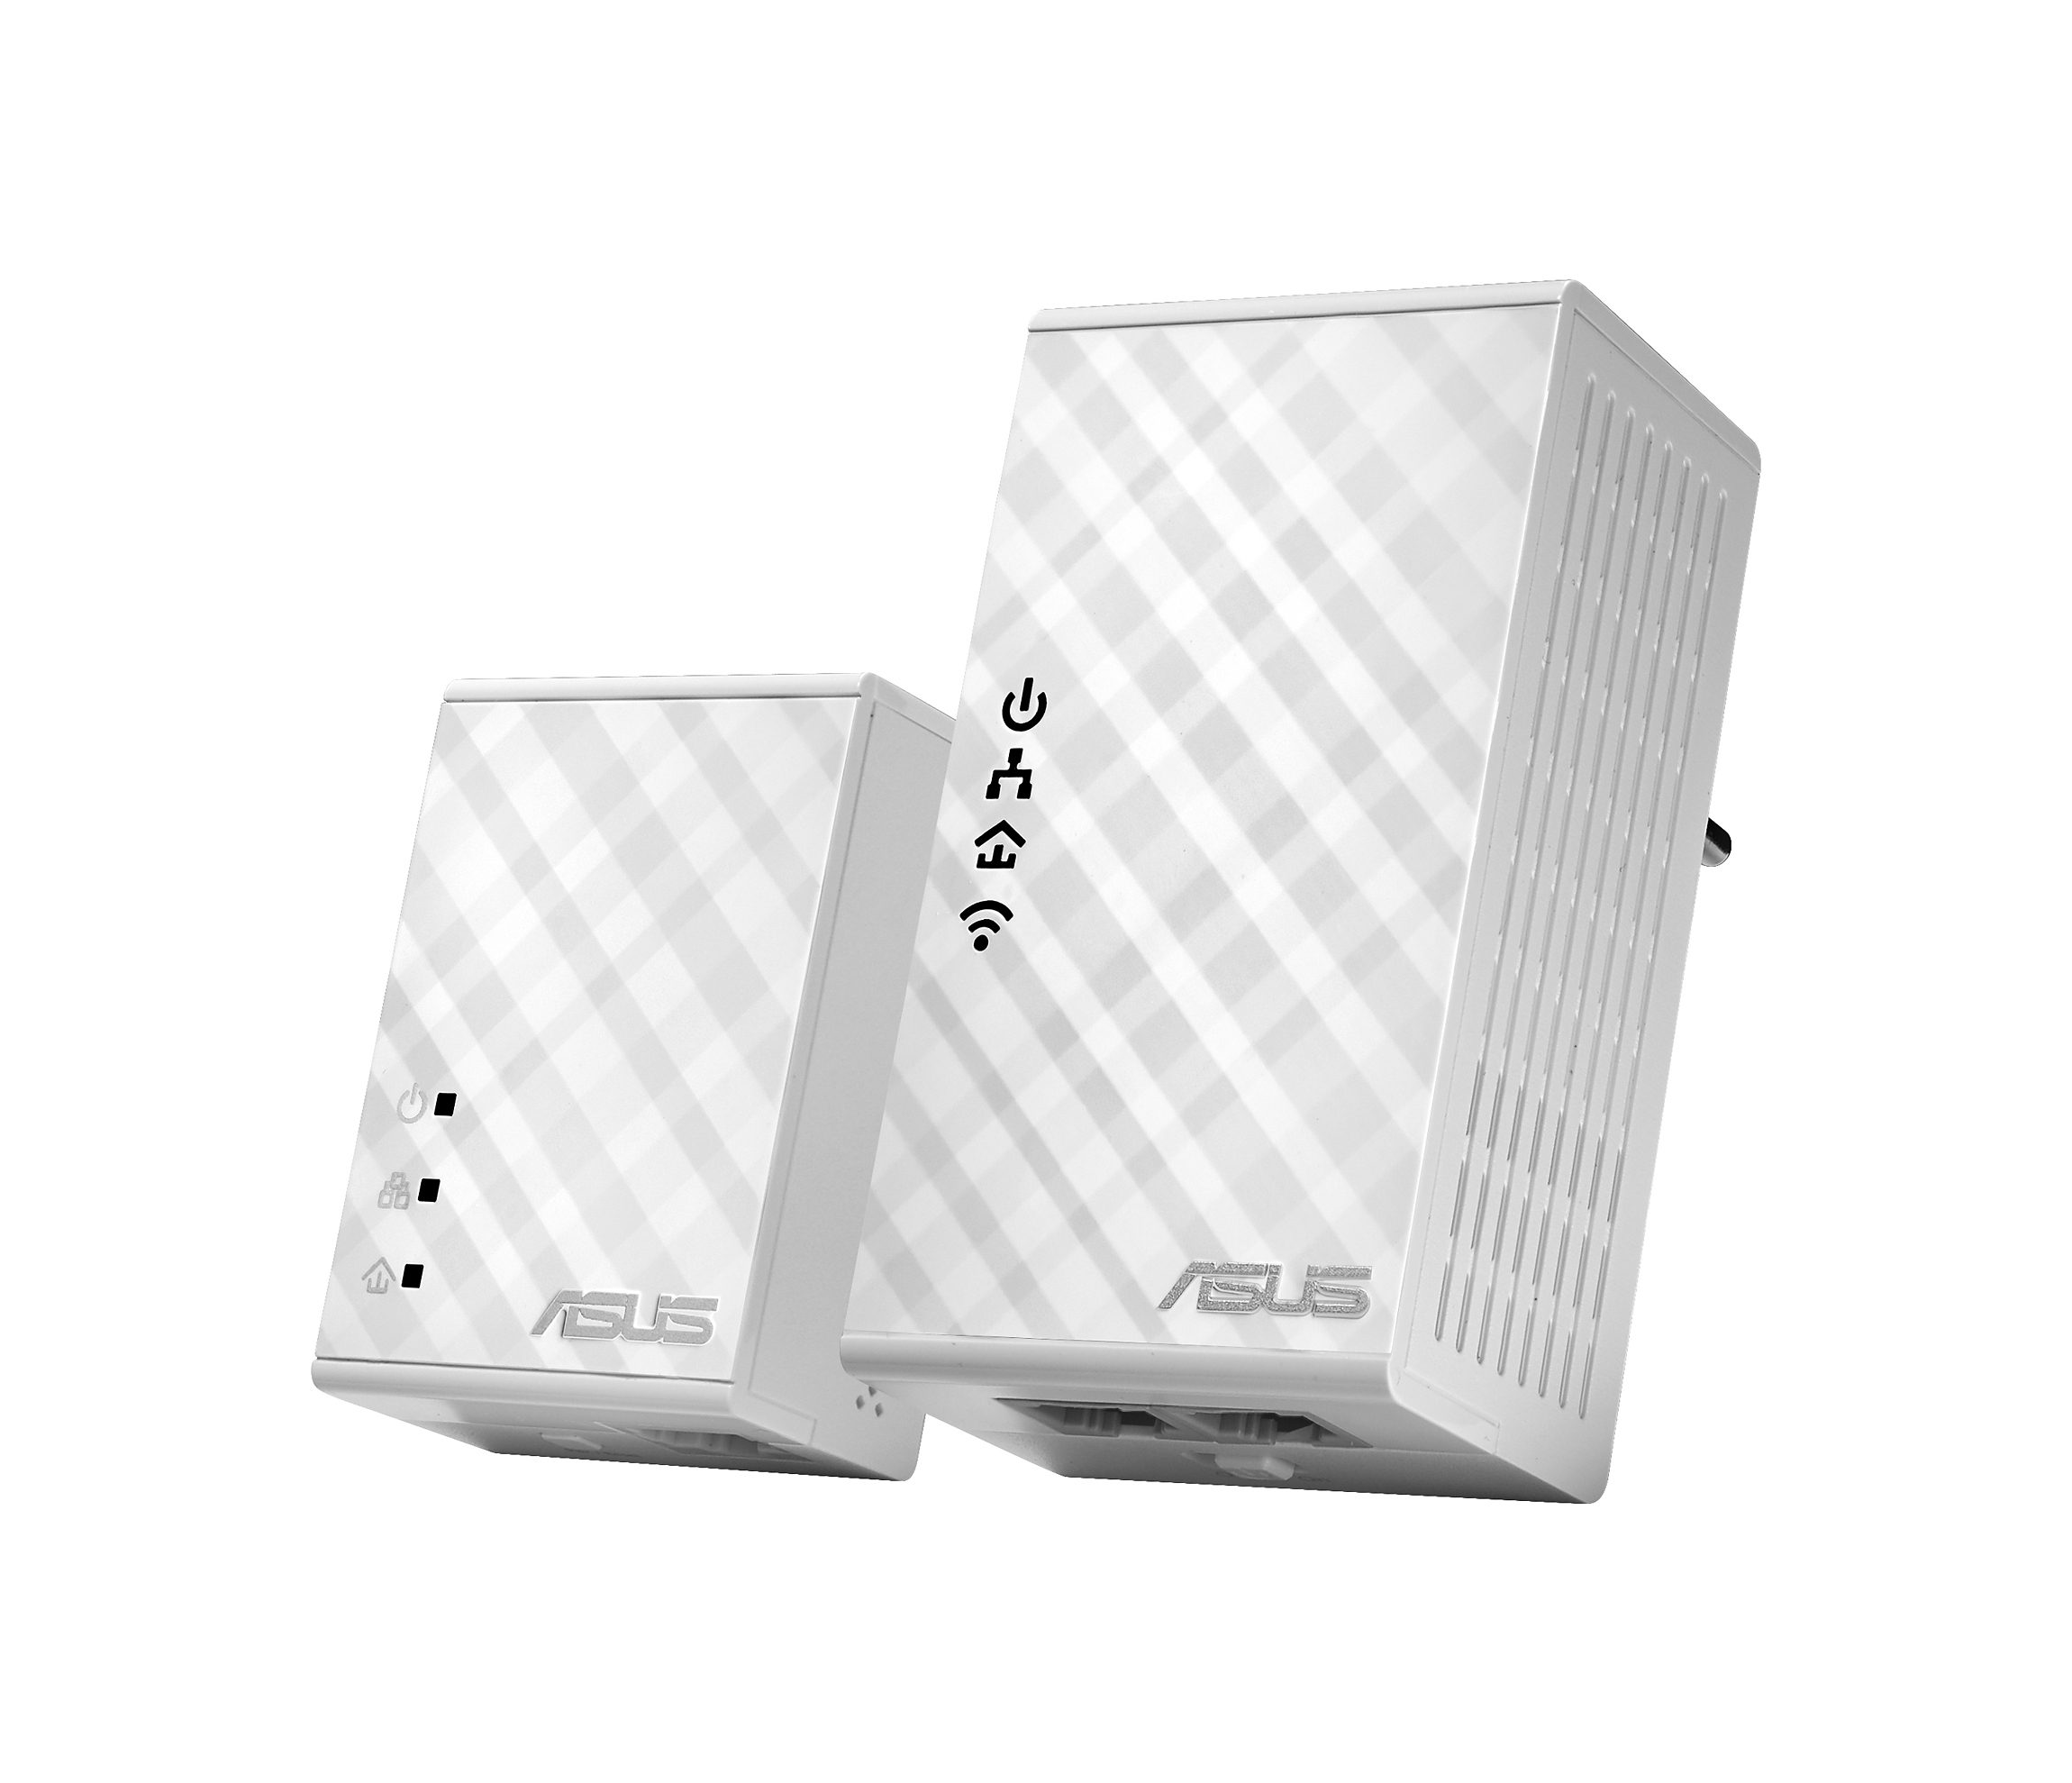 ASUS Powerline PL-N12 Kit WLAN Kombination